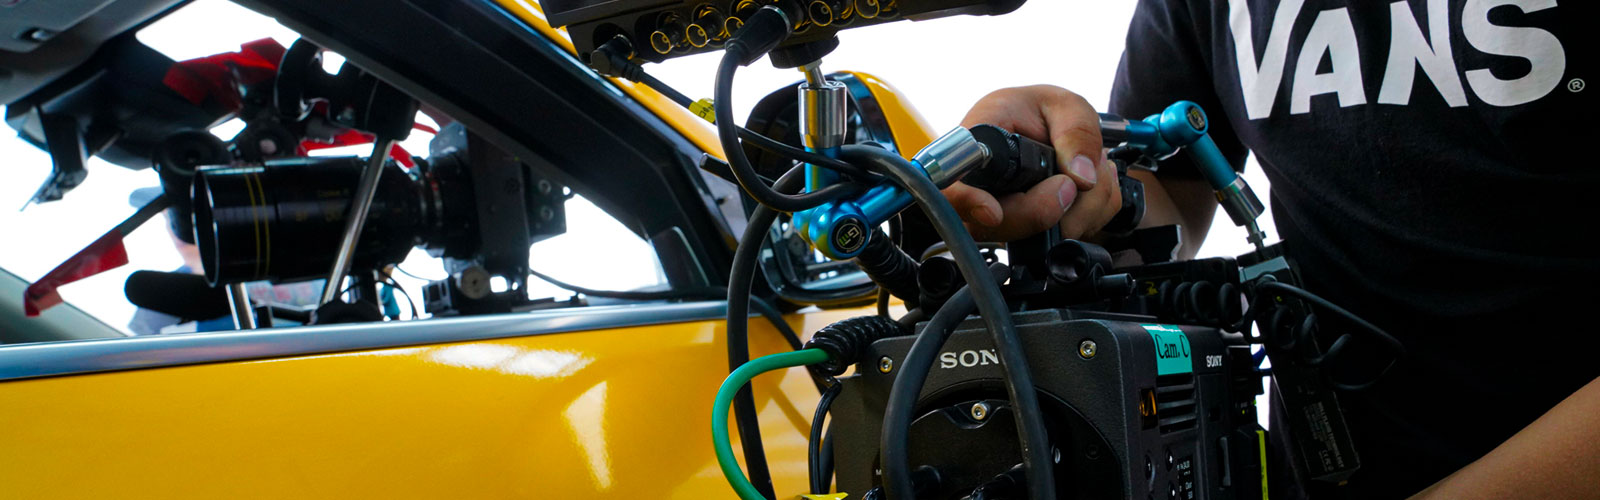 Close-up of CBK-3610XS VENICE extension kit in use for mounting on car